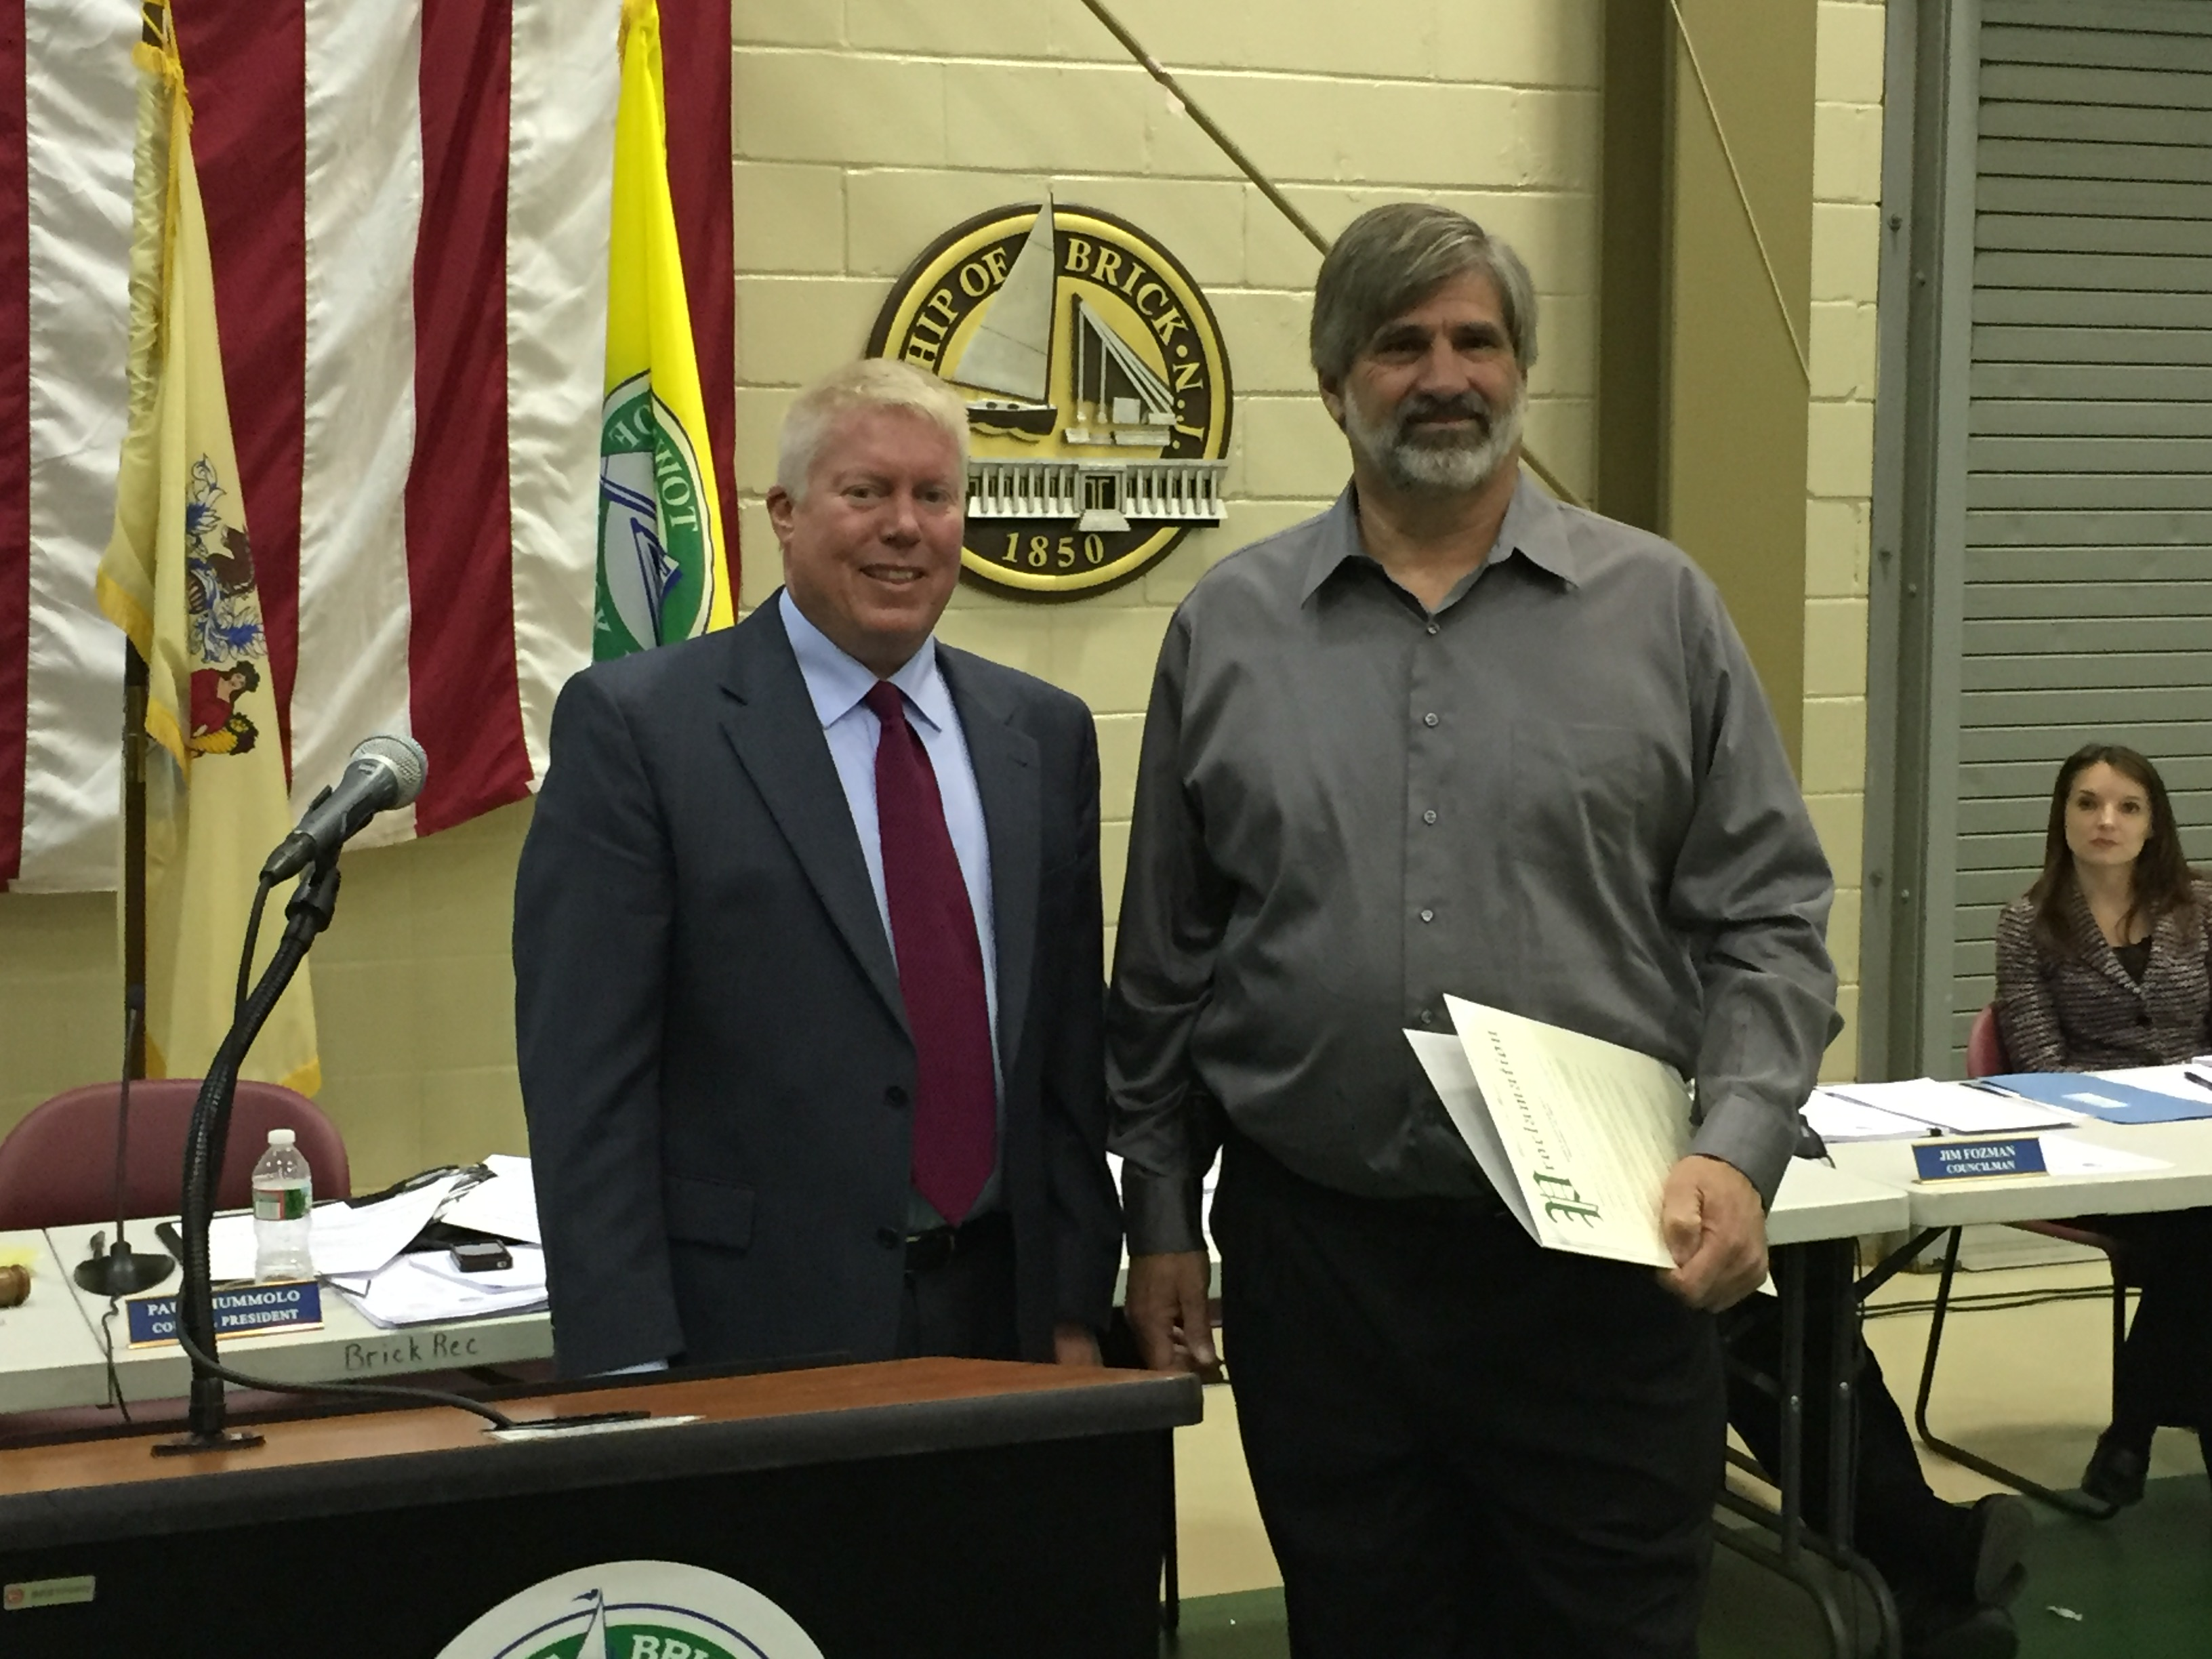 John Koester receives recognition from Mayor John Ducey. (Photo: Daniel Nee)